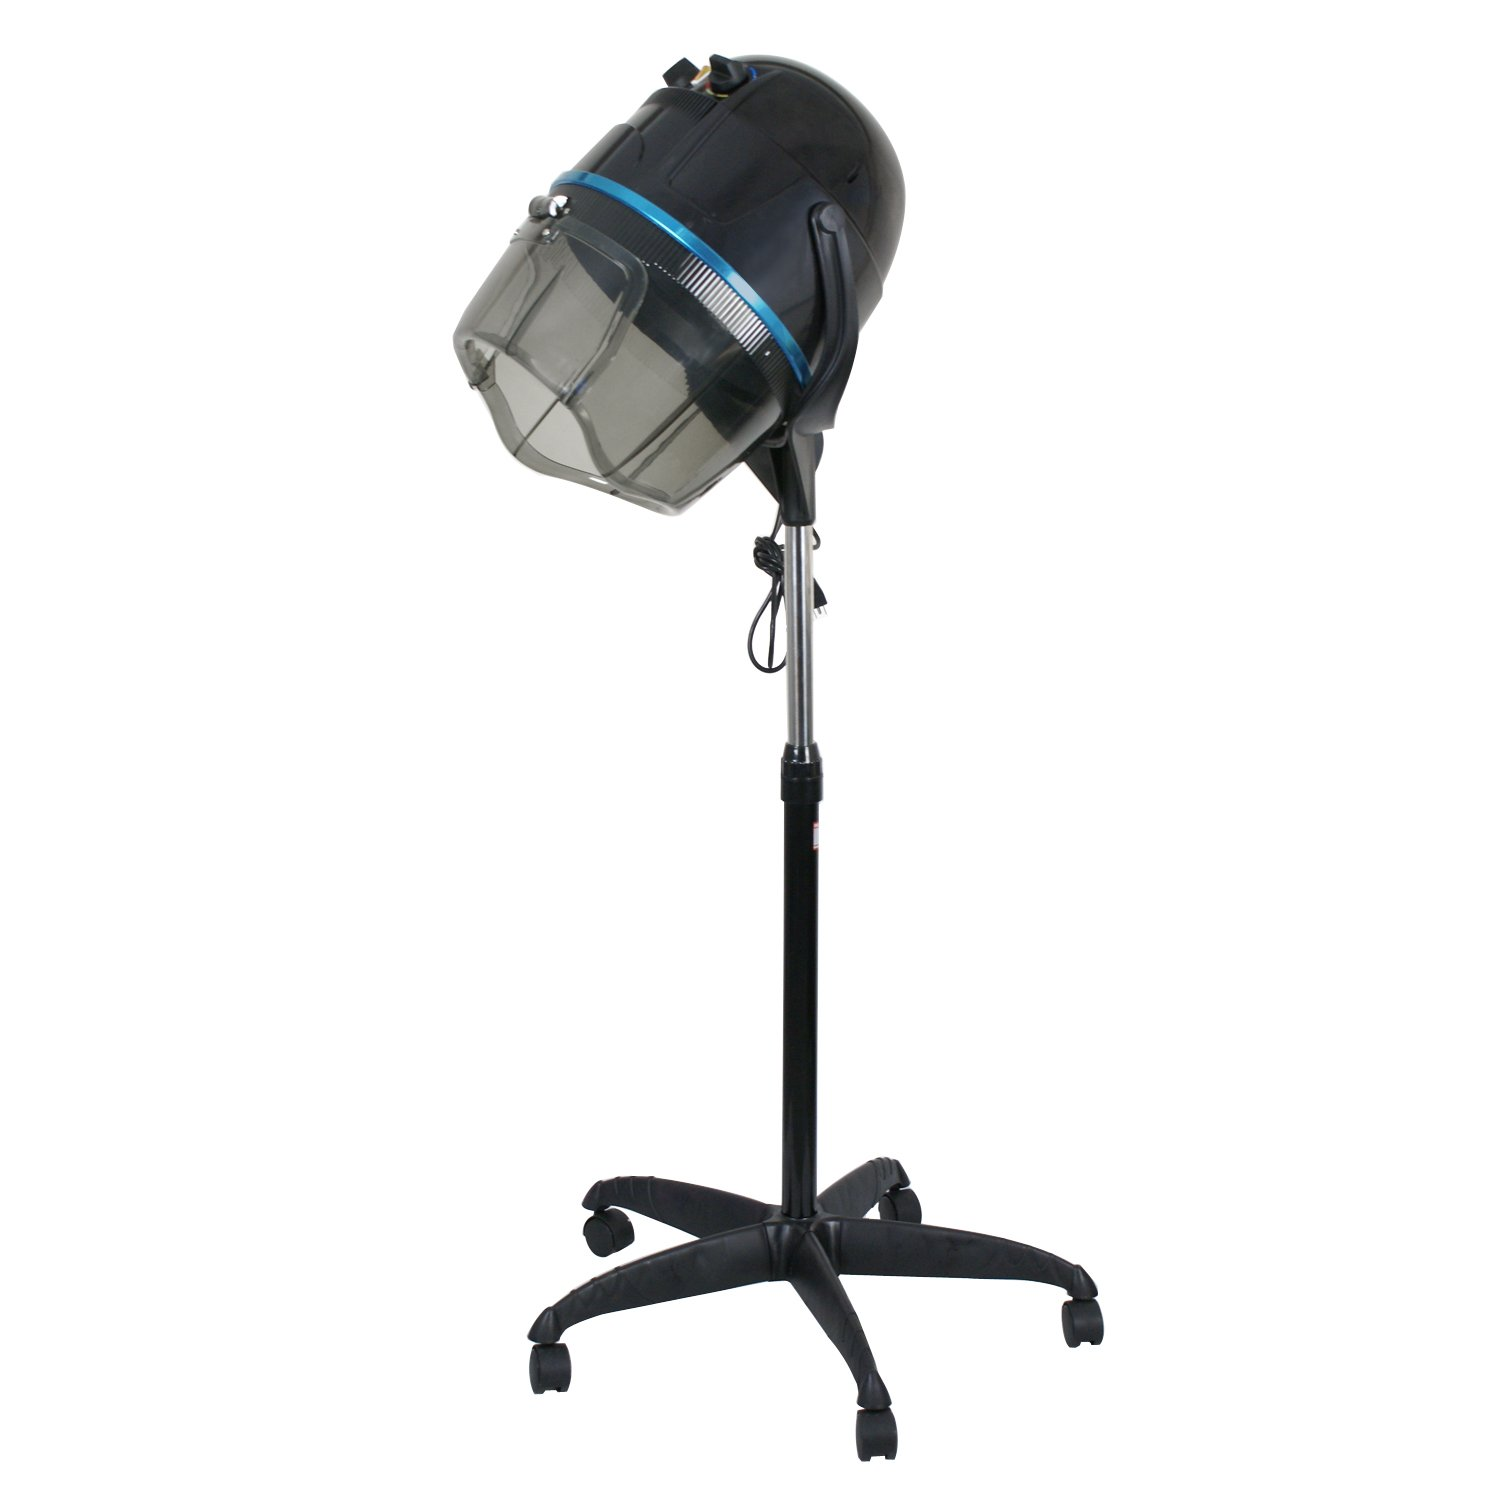 Professional 1300W Adjustable Hooded Floor Hair Bonnet Dryer Stand Up Rolling Base with Wheels Salon Equipment by Nova Microdermabrasion (Image #1)